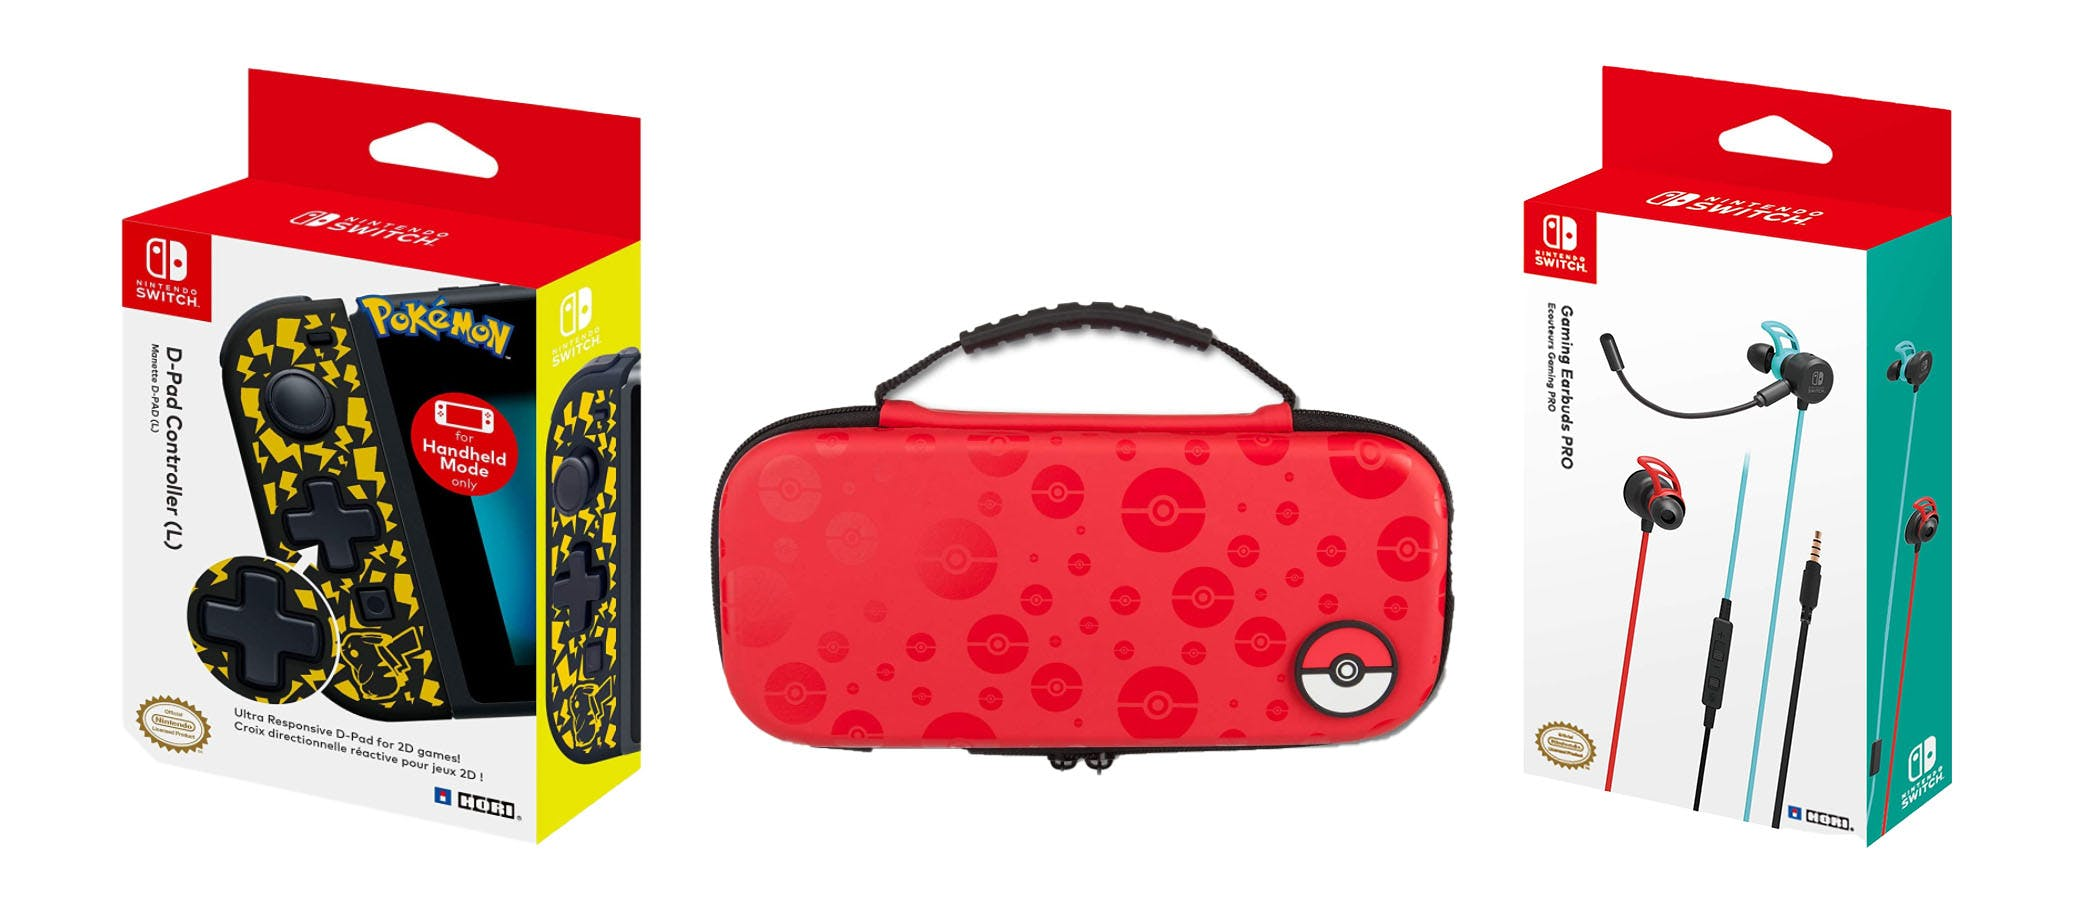 Nintendo Switch Pokemon Accessory Bundle 43 On Costco Com The Krazy Coupon Lady Create your own personal bundle and save with both nintendo switch and nintendo switch lite consoles. nintendo switch pokemon accessory